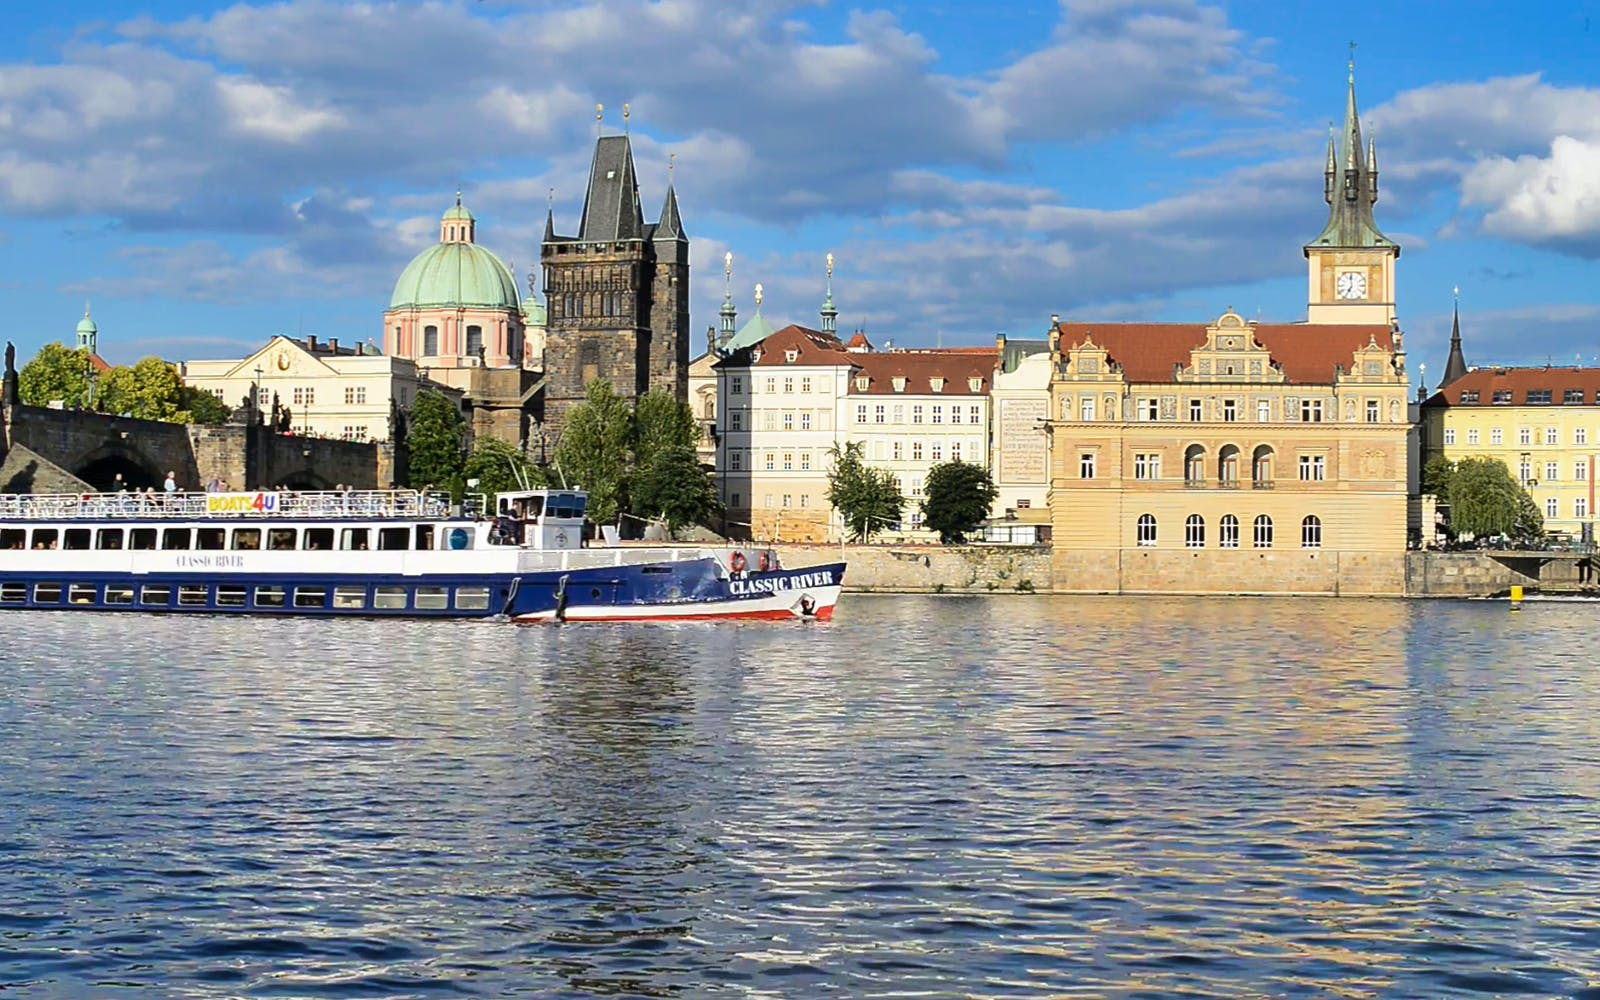 prague sightseeing cruise on the vltava river-3